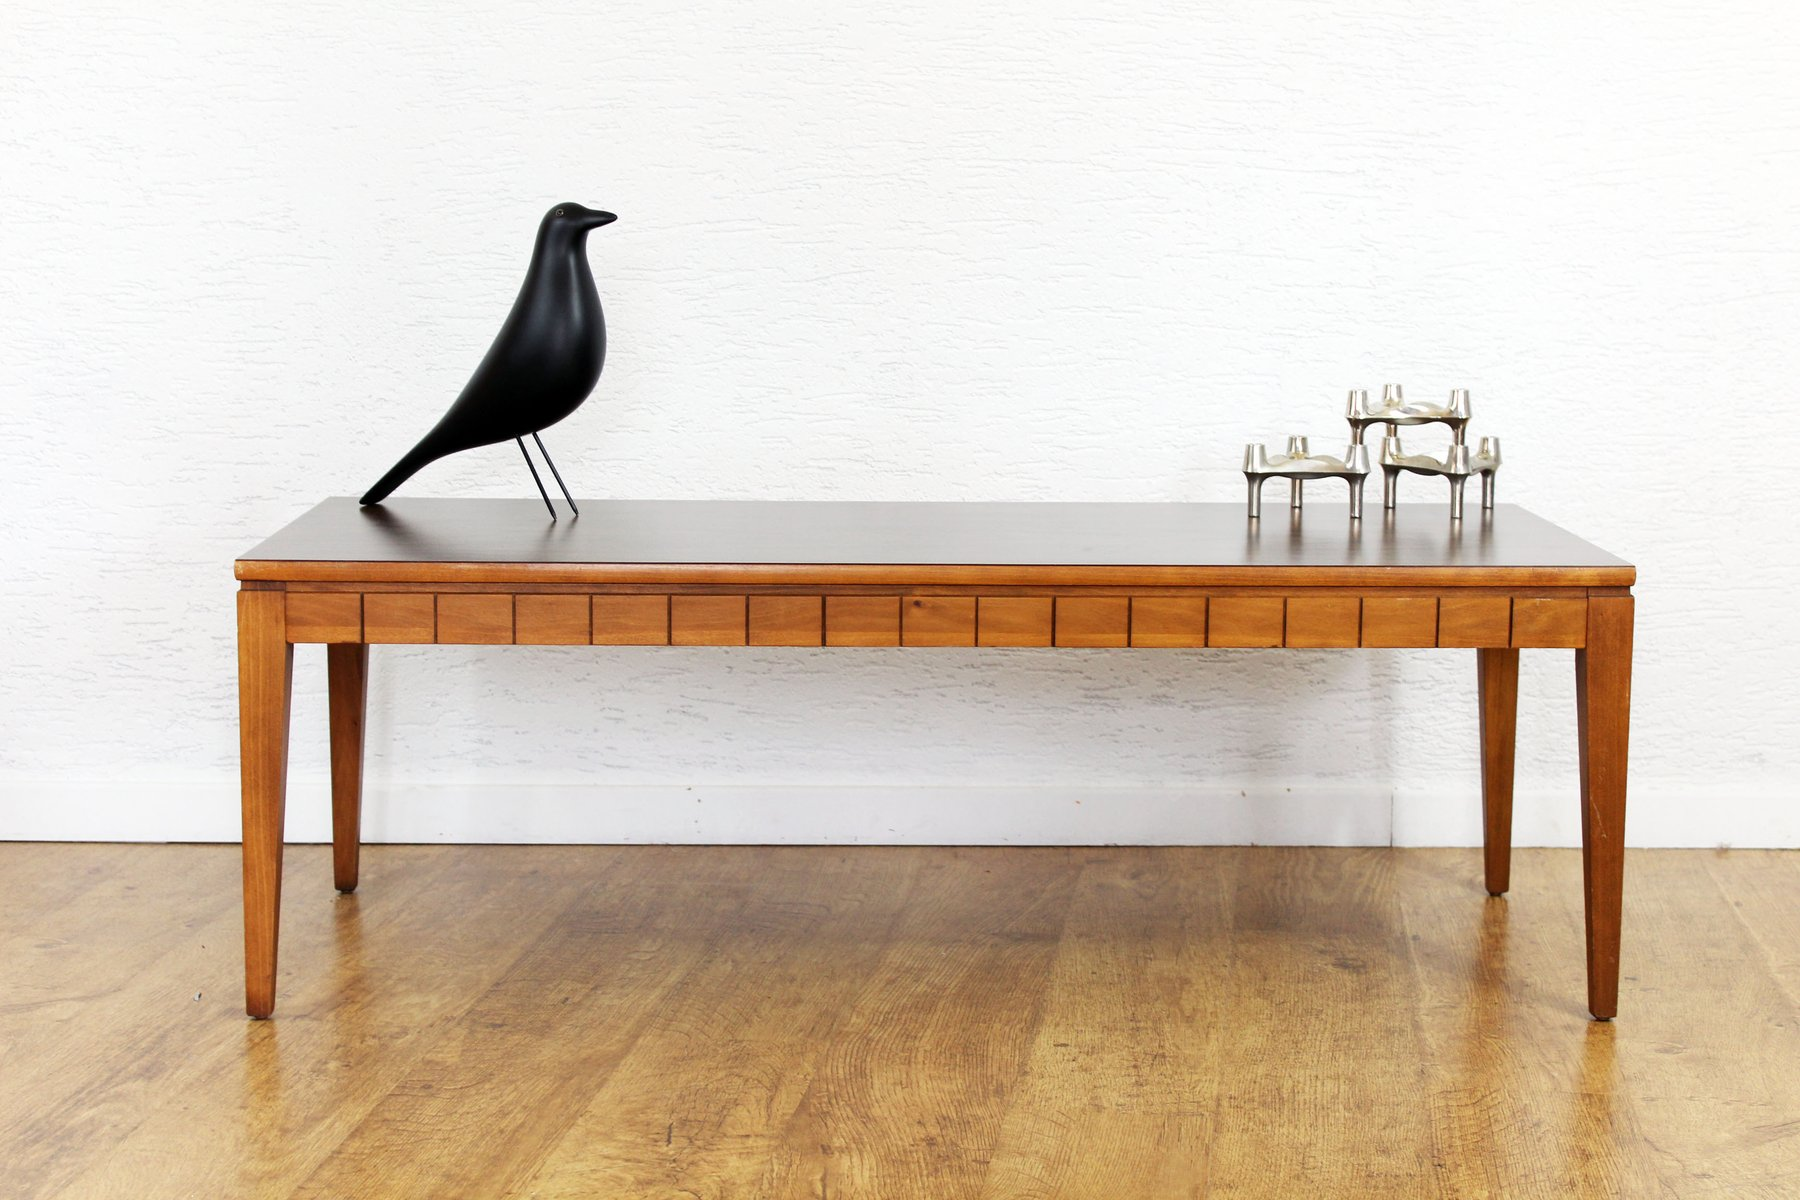 Vintage Scandinavian 45 3 Coffee Table from Mersman for sale at Pamono